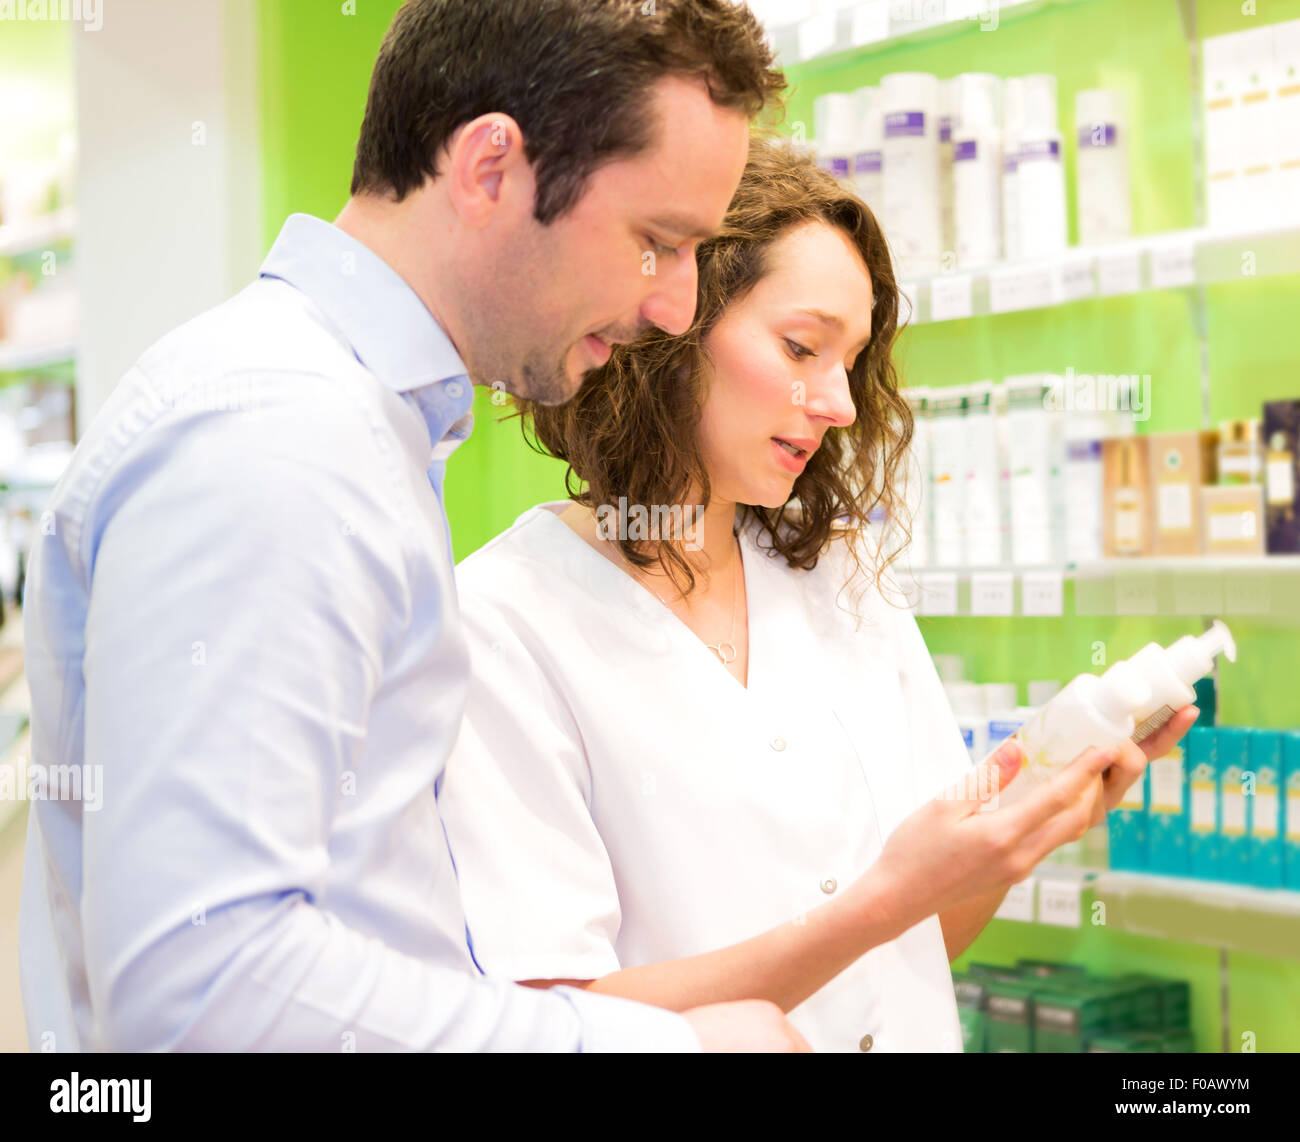 VIew of an Attractive pharmacist advising a patient - Stock Image